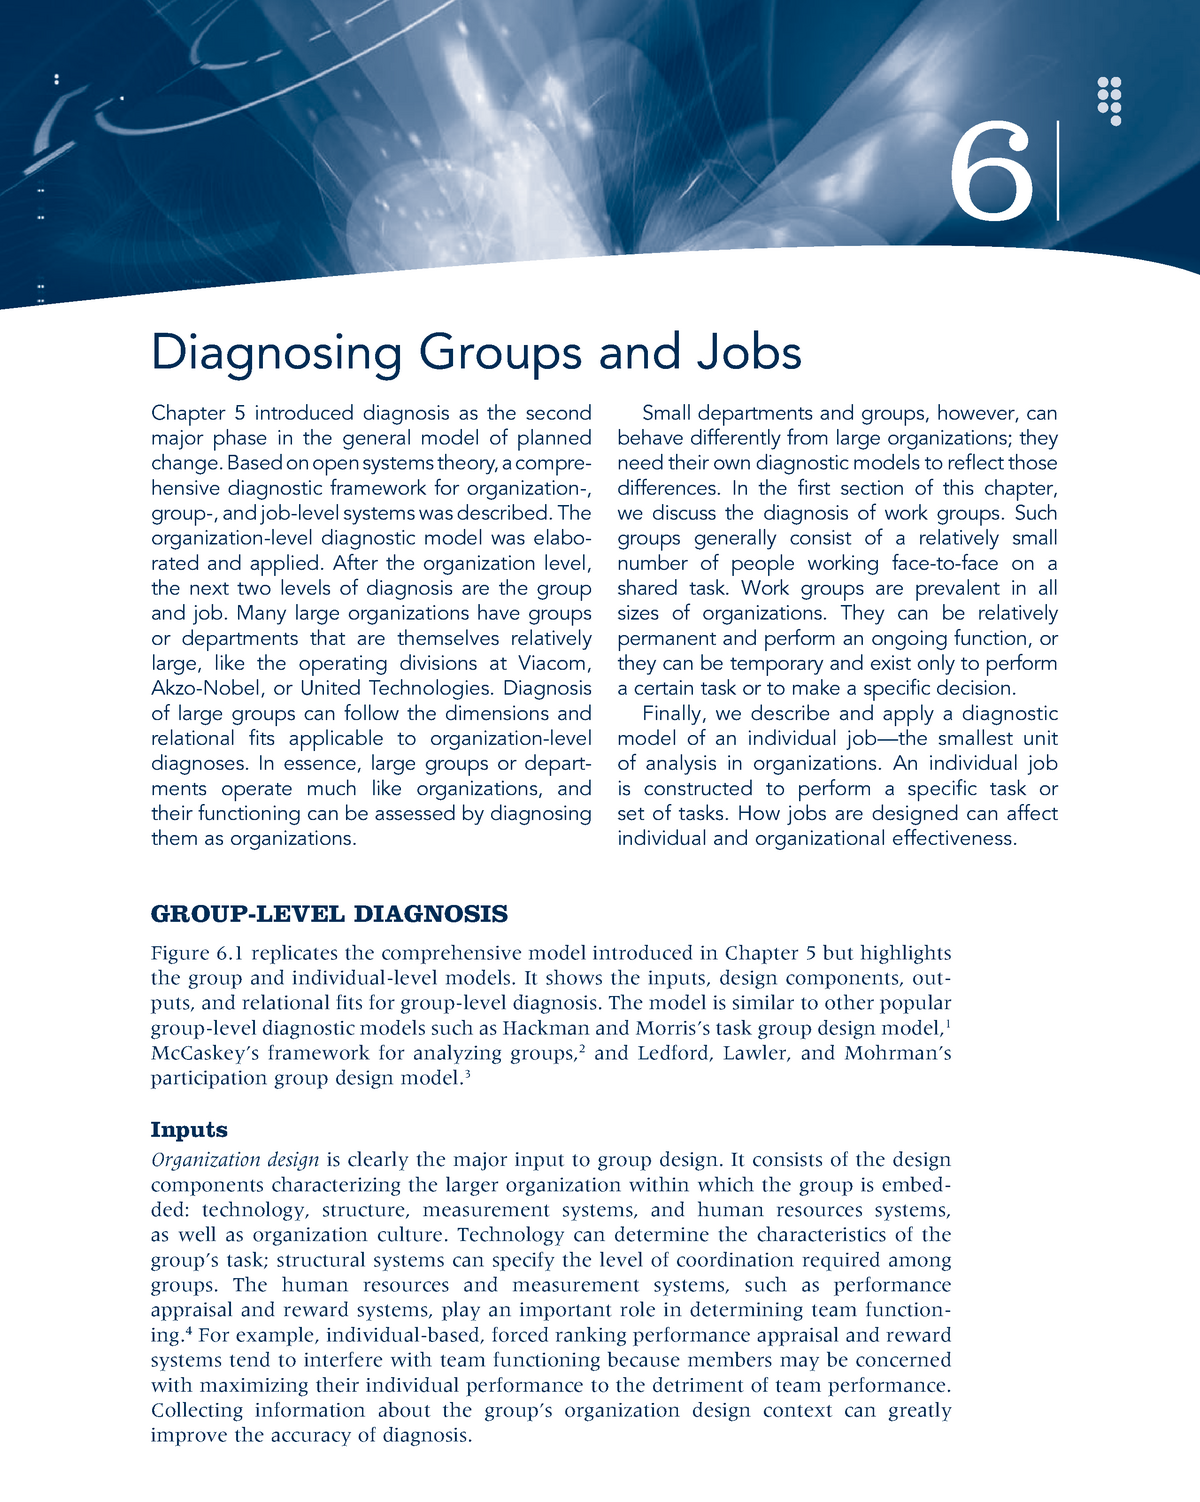 Chapter 06 Diagnosing Groups and Jobs - MGMT 416 - StuDocu